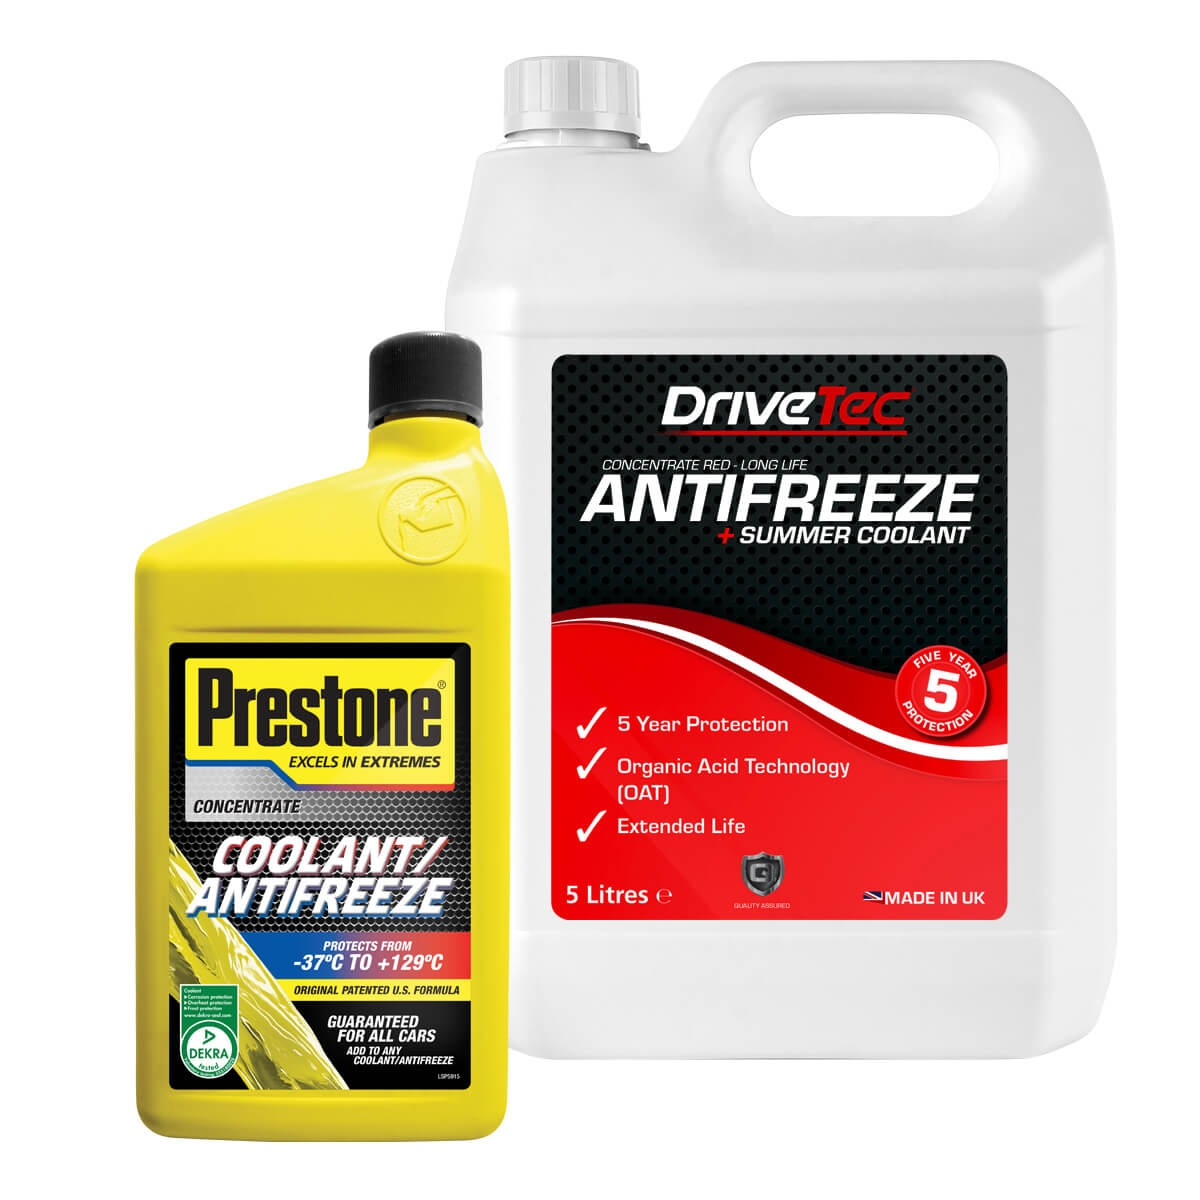 FORD ESCORT MK5 Antifreeze & Coolant